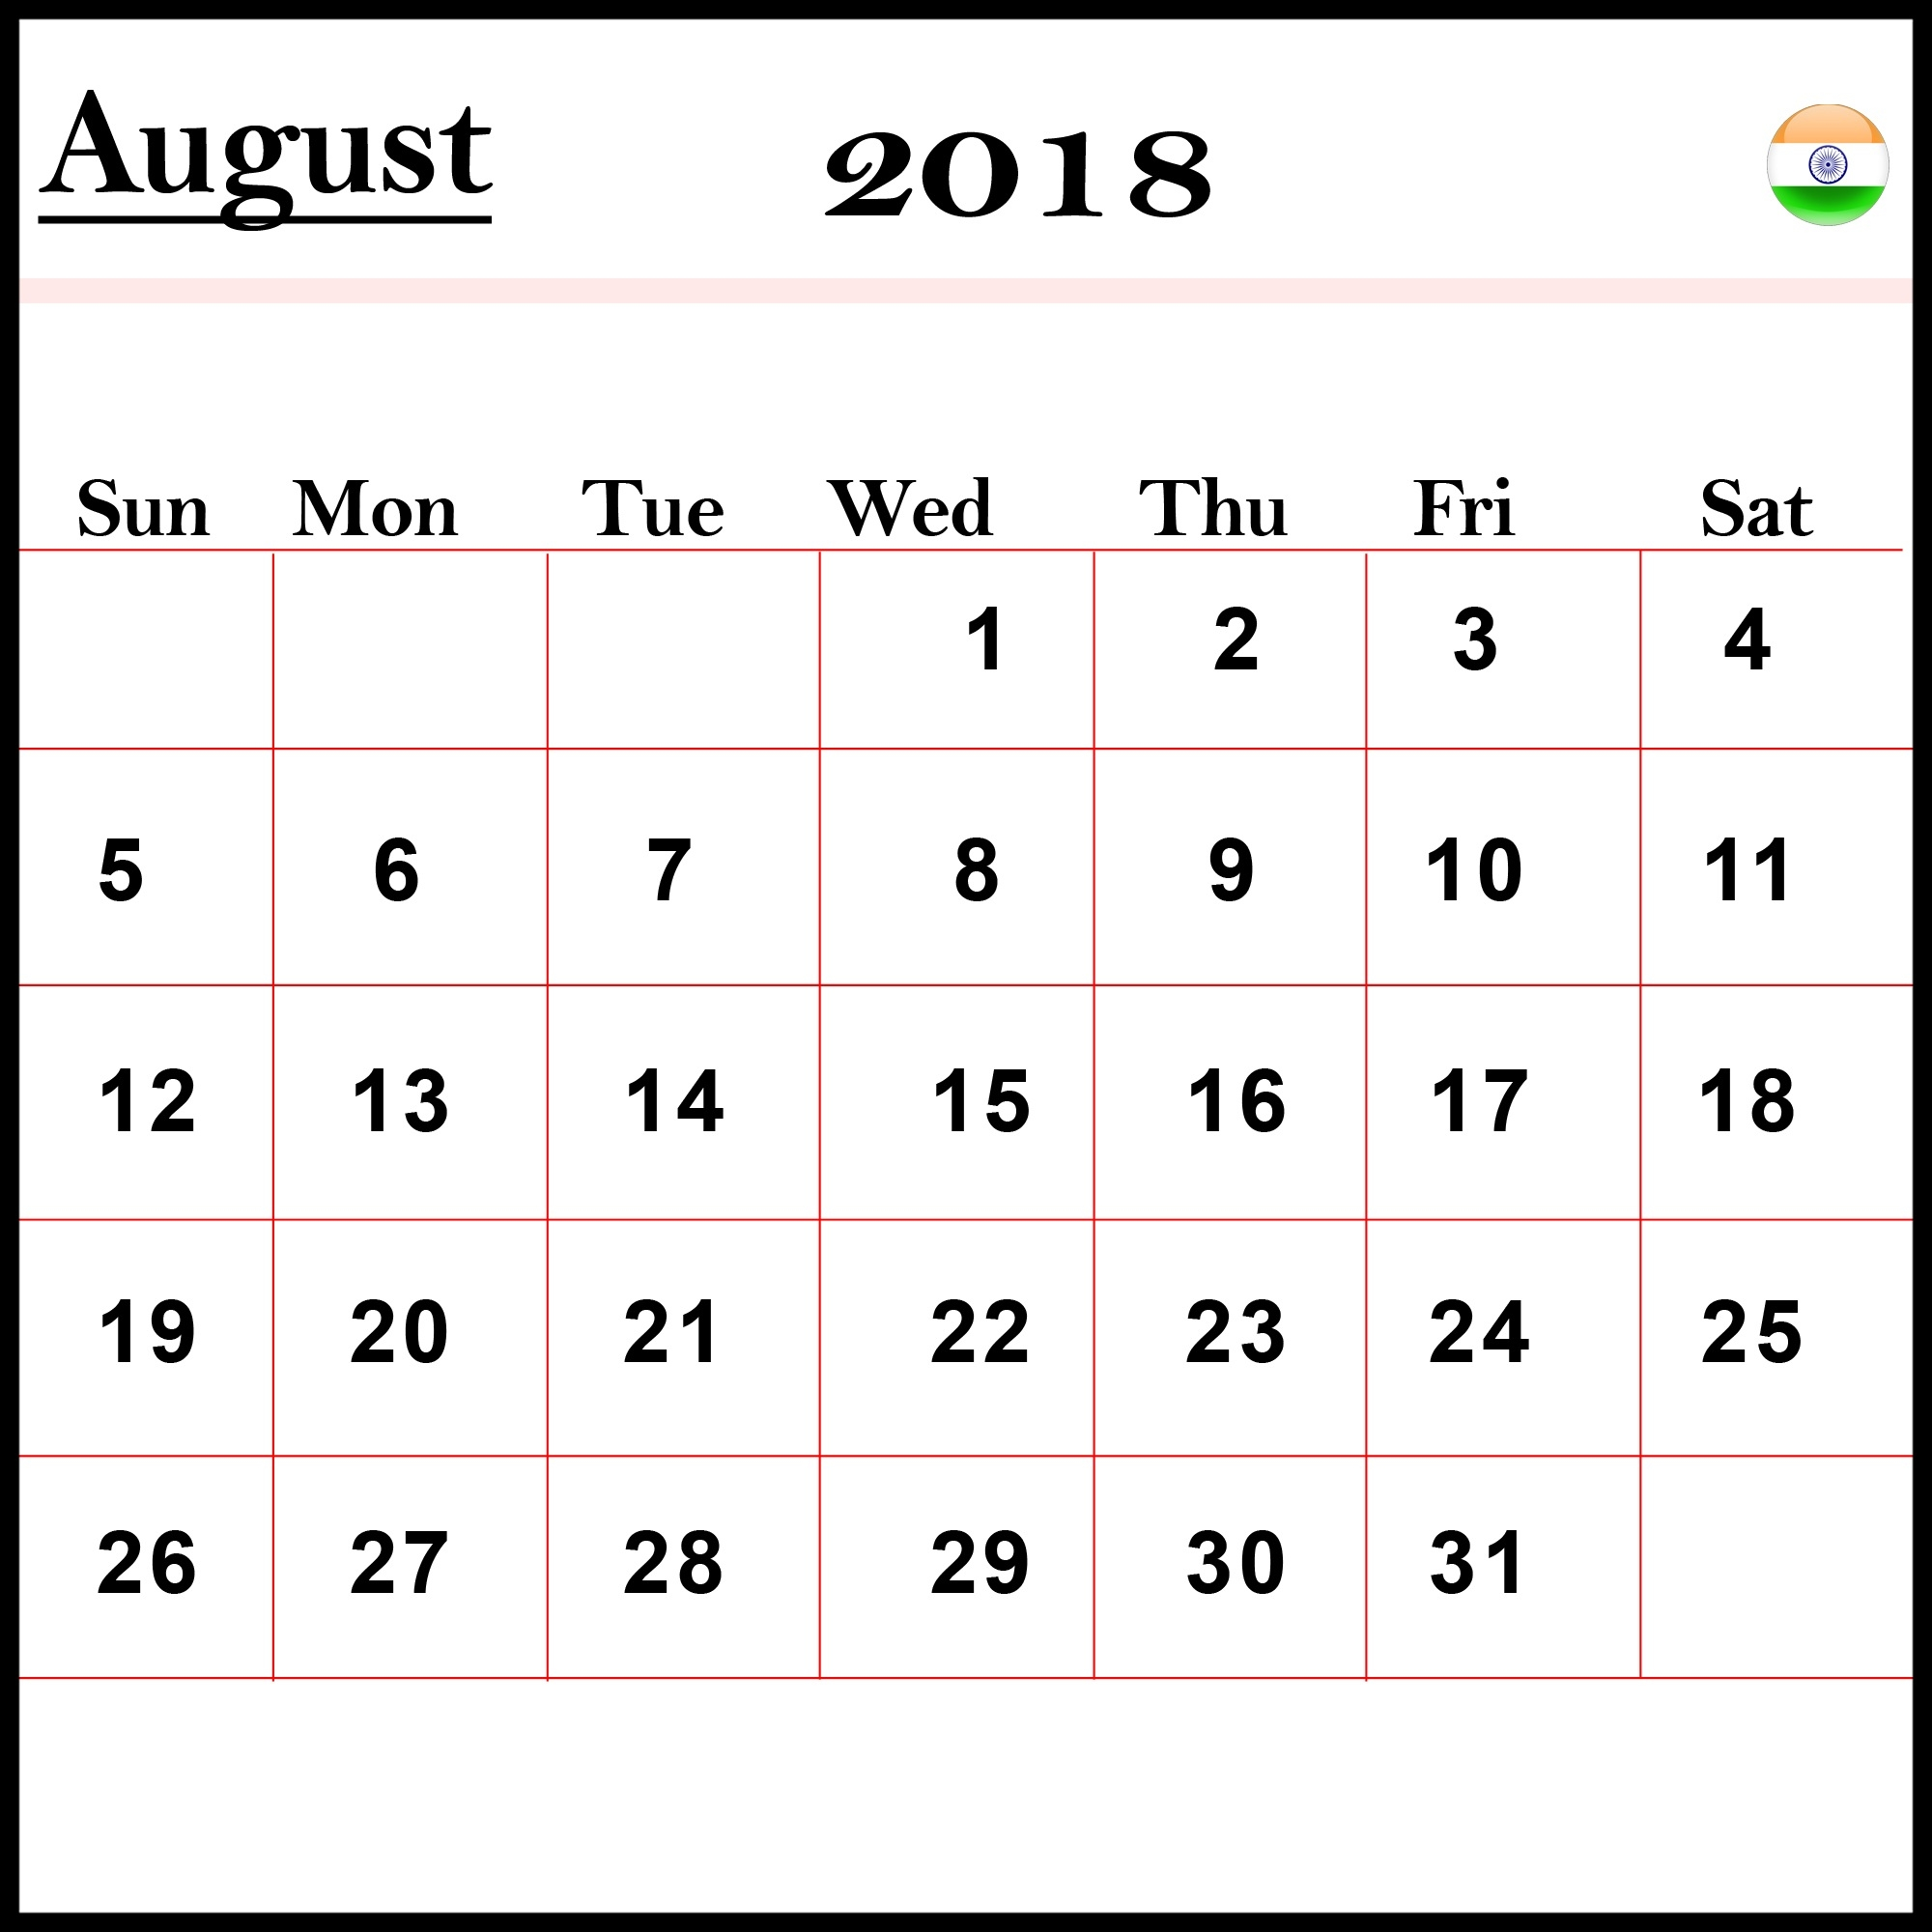 free download blank calendar august 2018 template printable Calendar August 2018 Printable Free erdferdf